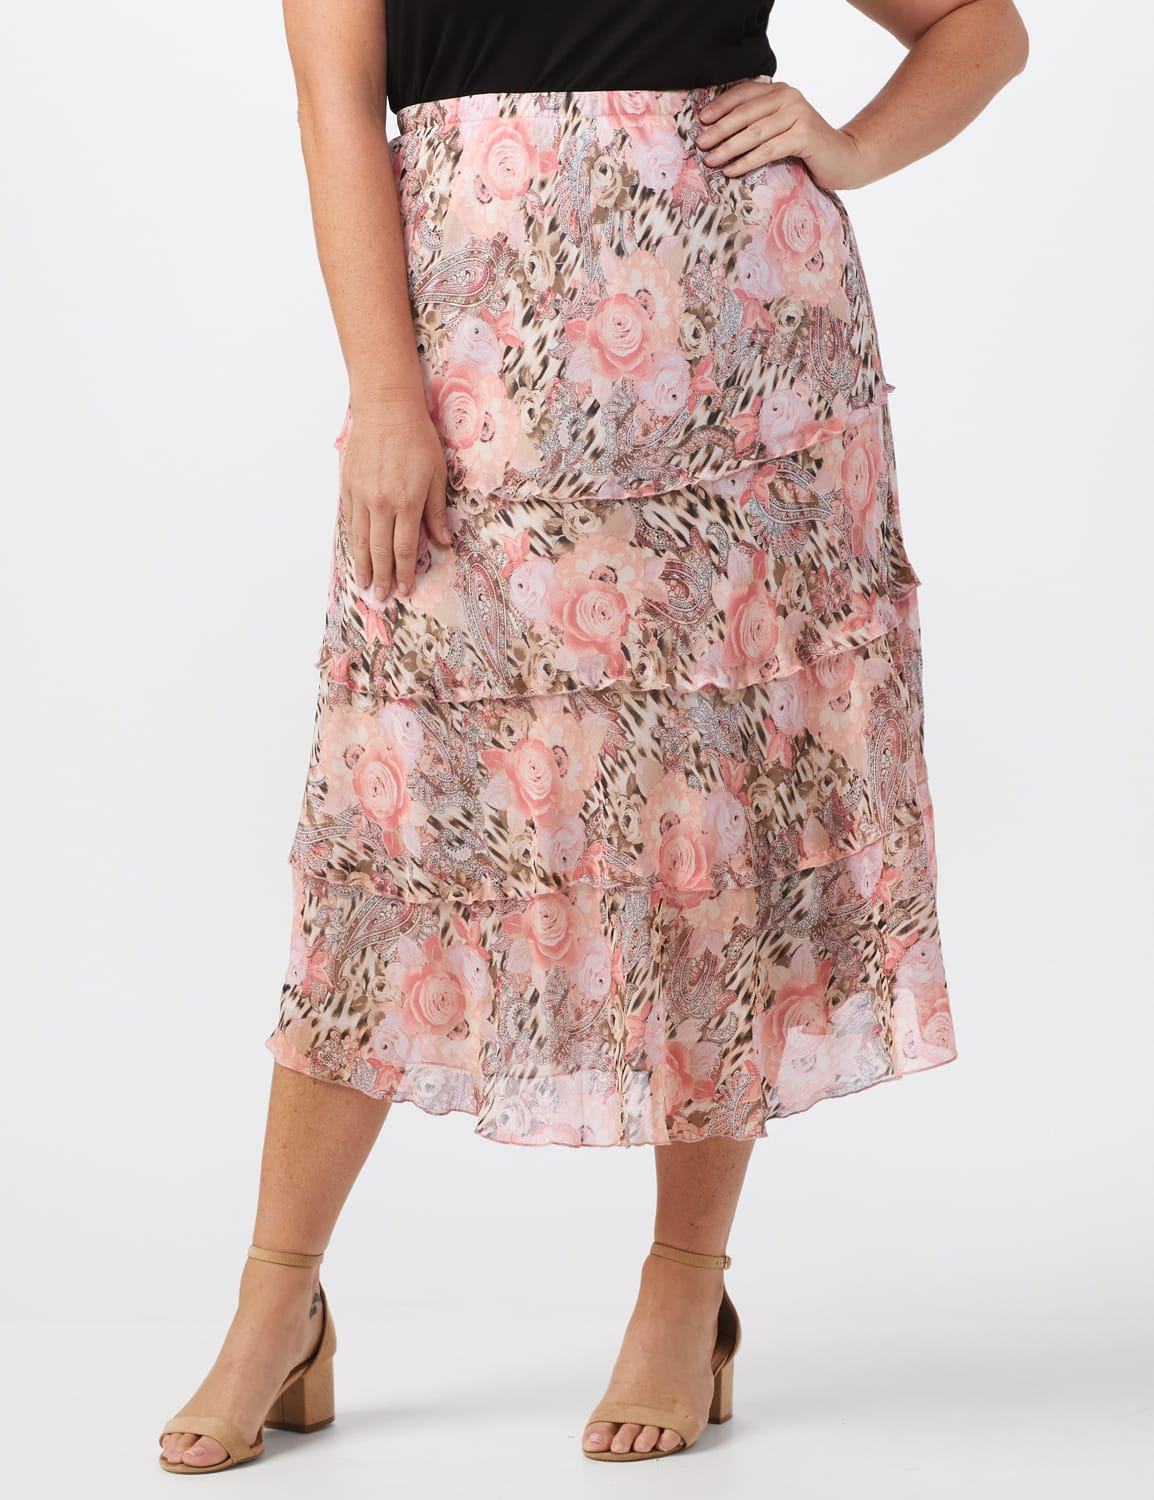 4 Tiered Elastic Waistband Skirt - Blush/taupe.black - Front